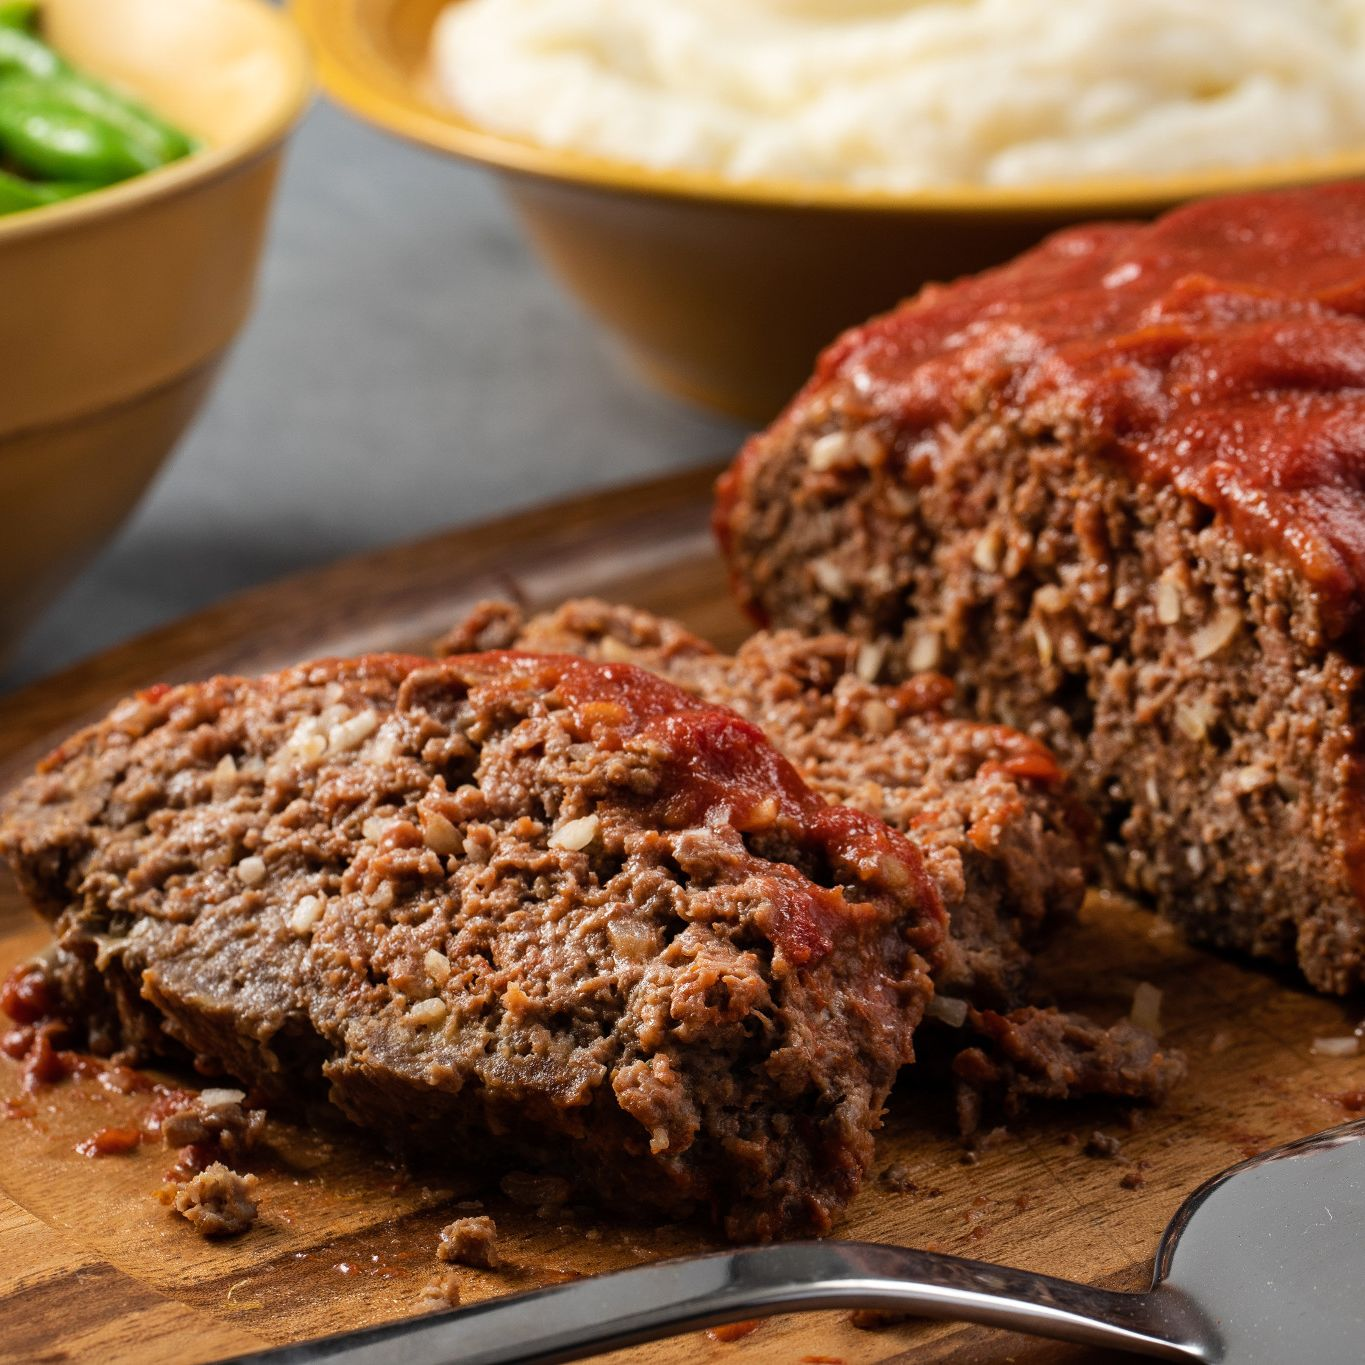 Easy Meatloaf_2019-03-14_6481_TSUCALAS.jpg